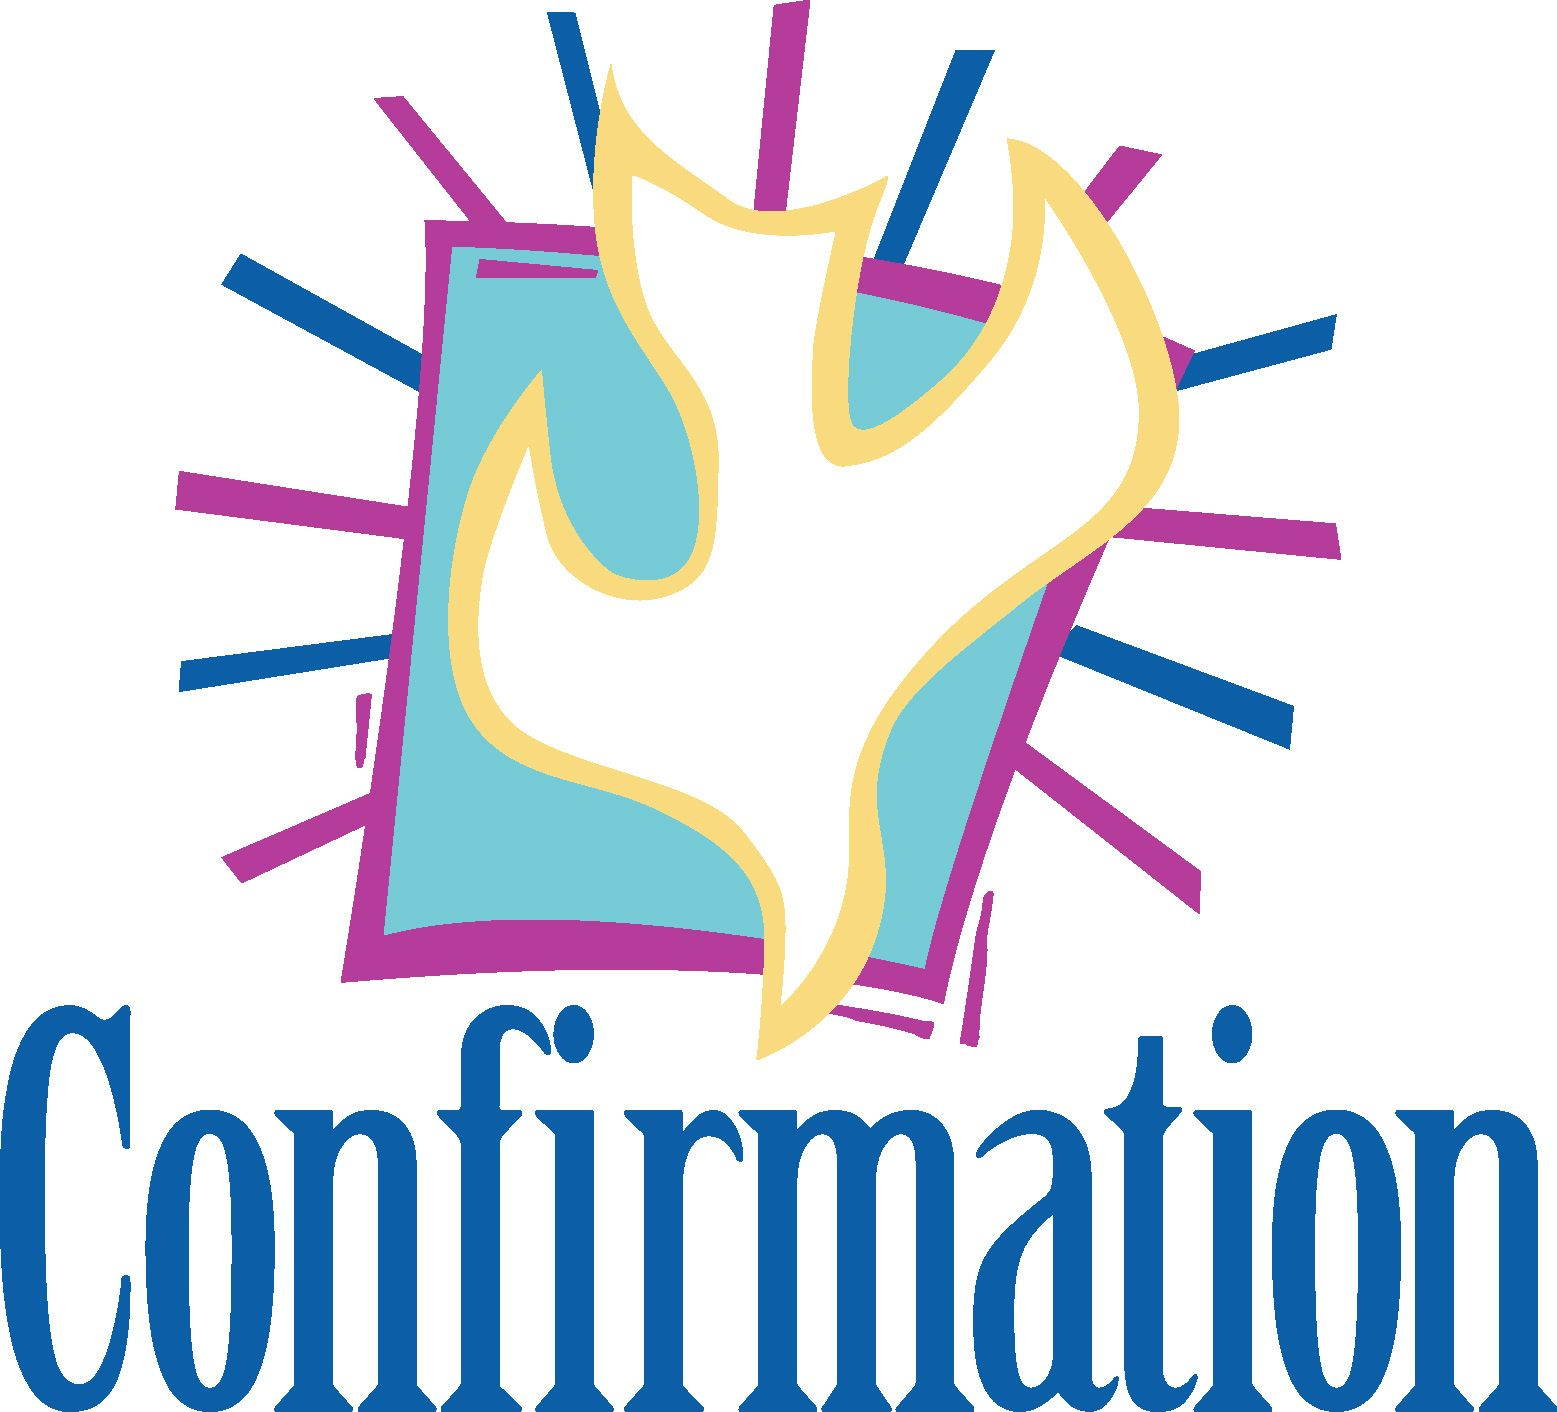 Symbol this is a picture of a dove a dove is a symbol of symbol this is a picture of a dove a dove is a symbol of confirmation it represents confirmation because it is supposed to be the holy spirit and in biocorpaavc